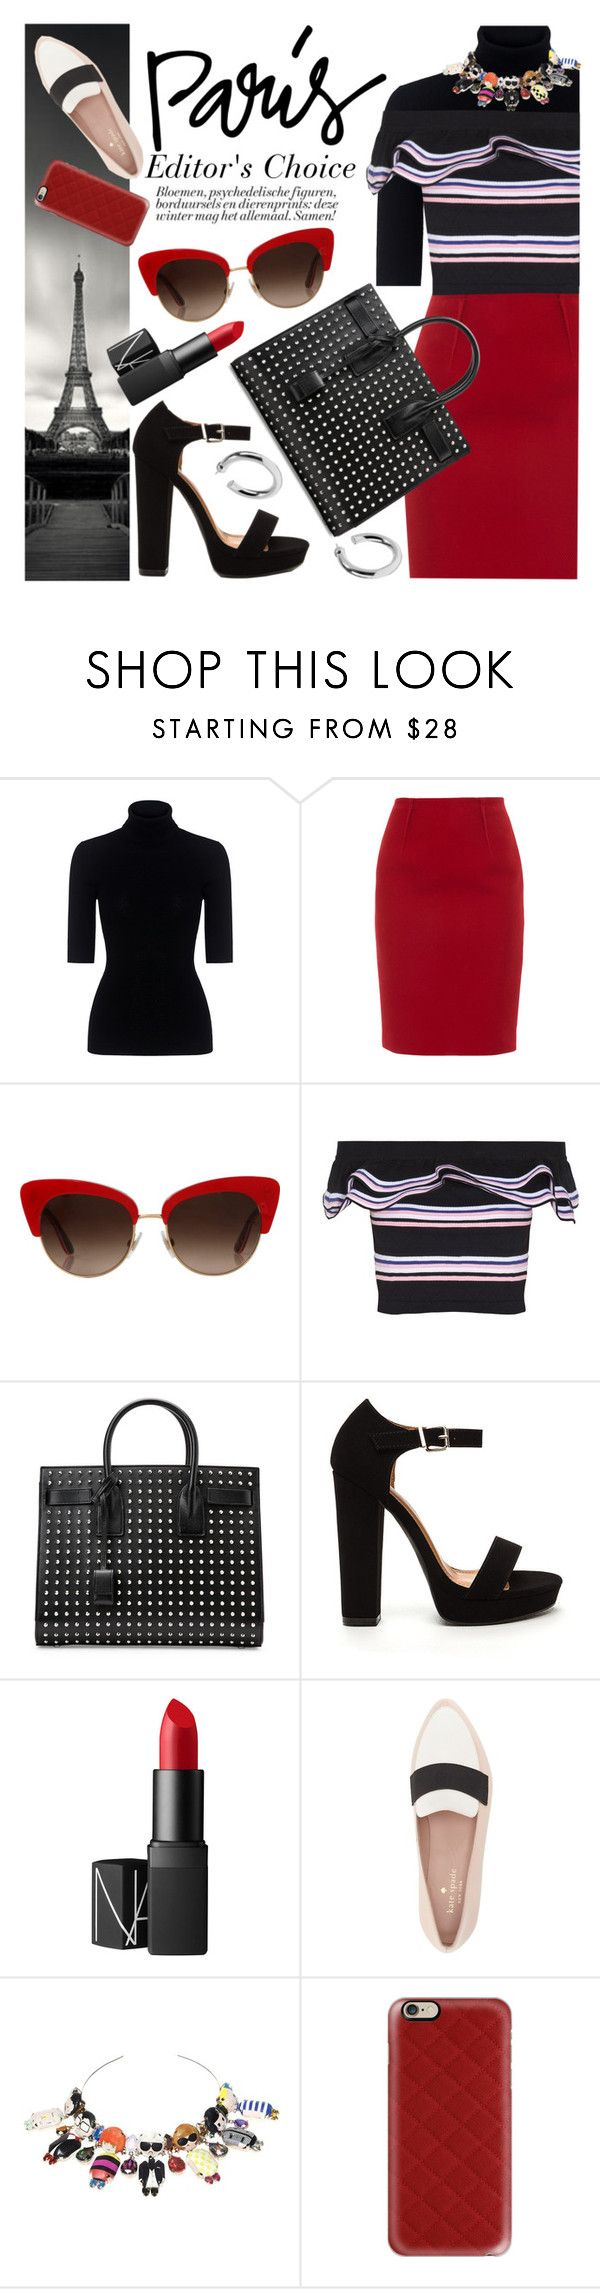 """""""Paris - From Heels to Flats"""" by ivansyd ❤ liked on Polyvore featuring Theory, Paule Ka, Dolce&Gabbana, MSGM, Yves Saint Laurent, NARS Cosmetics, Kate Spade, Bijoux de Famille, Casetify and Sophie Buhai"""